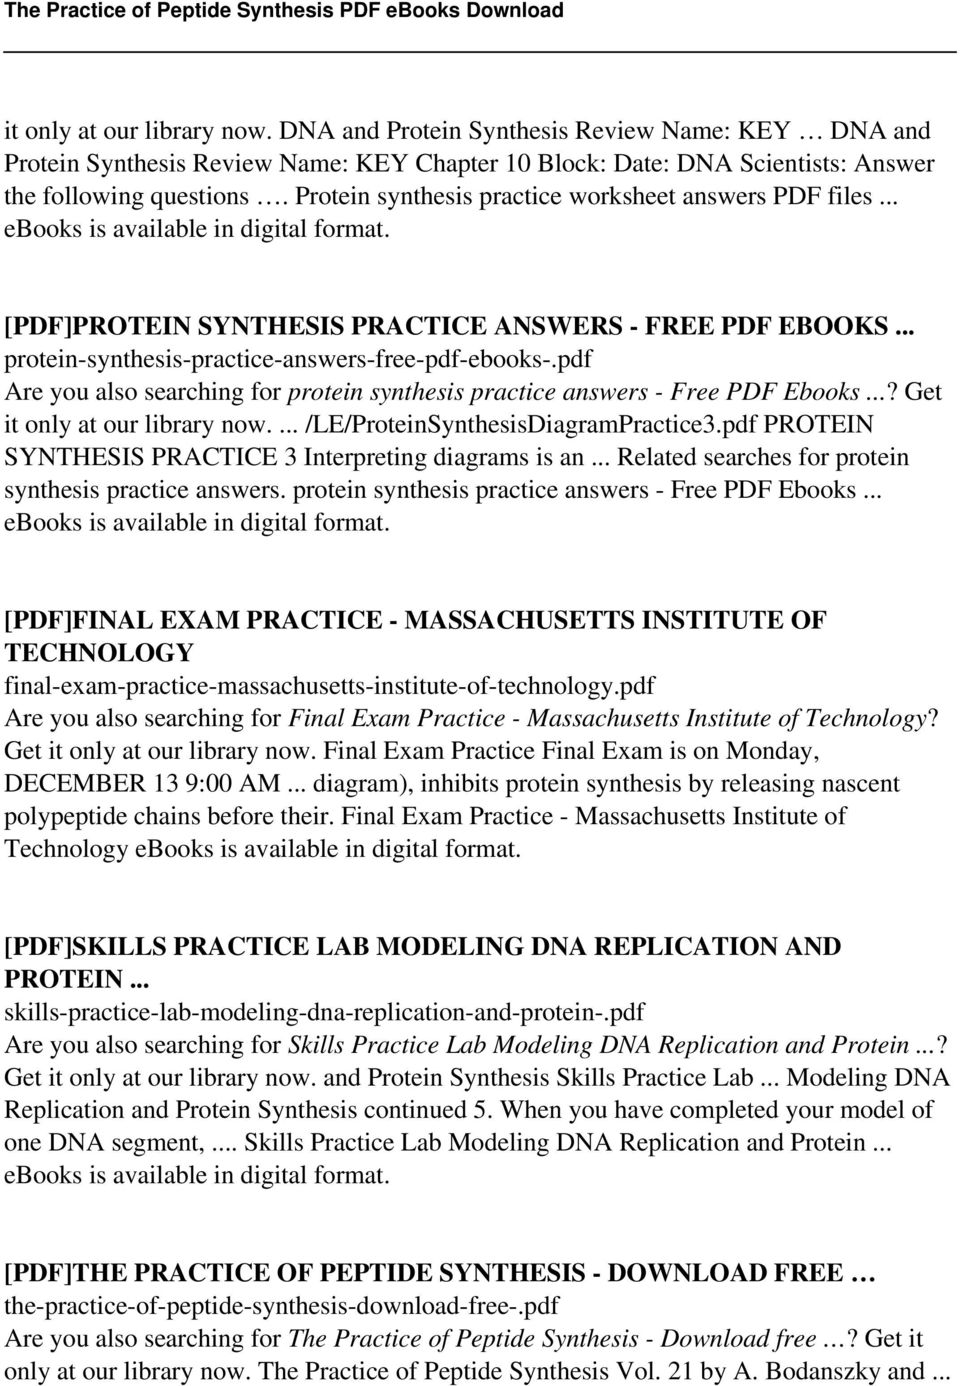 worksheet Say It With Dna Protein Synthesis Worksheet Answers the practice of peptide synthesis pdf are you also searching for protein answers free ebooks